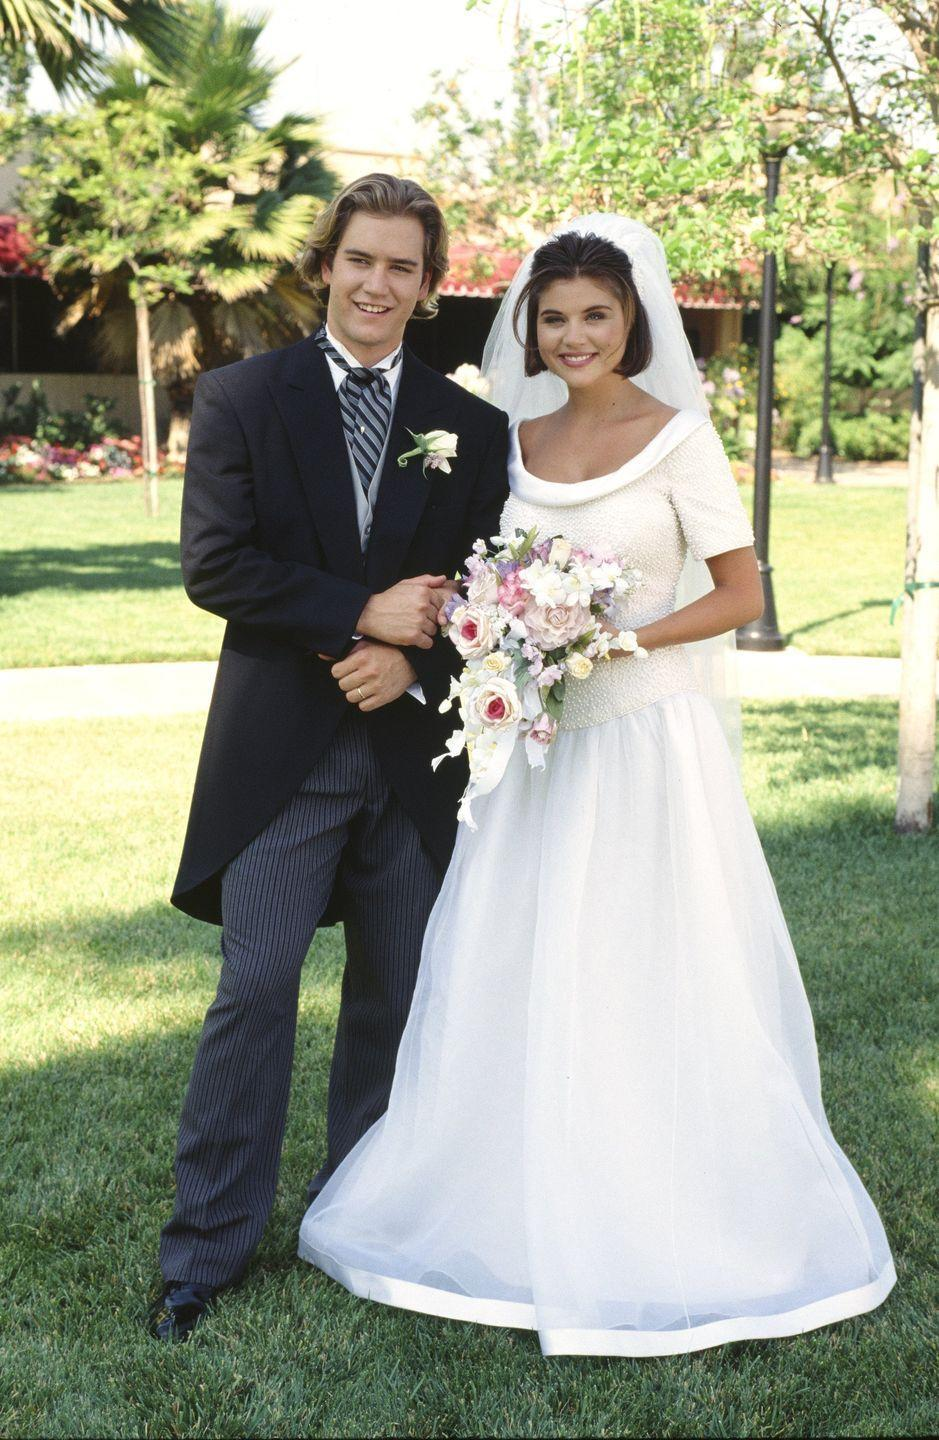 <p>First of all, if you didn't know <em>Saved by the Bell: The College Years </em>existed until now, you're welcome. Second of all, Kelly Kapowski's dress is un. real. But why am I surprised?</p>